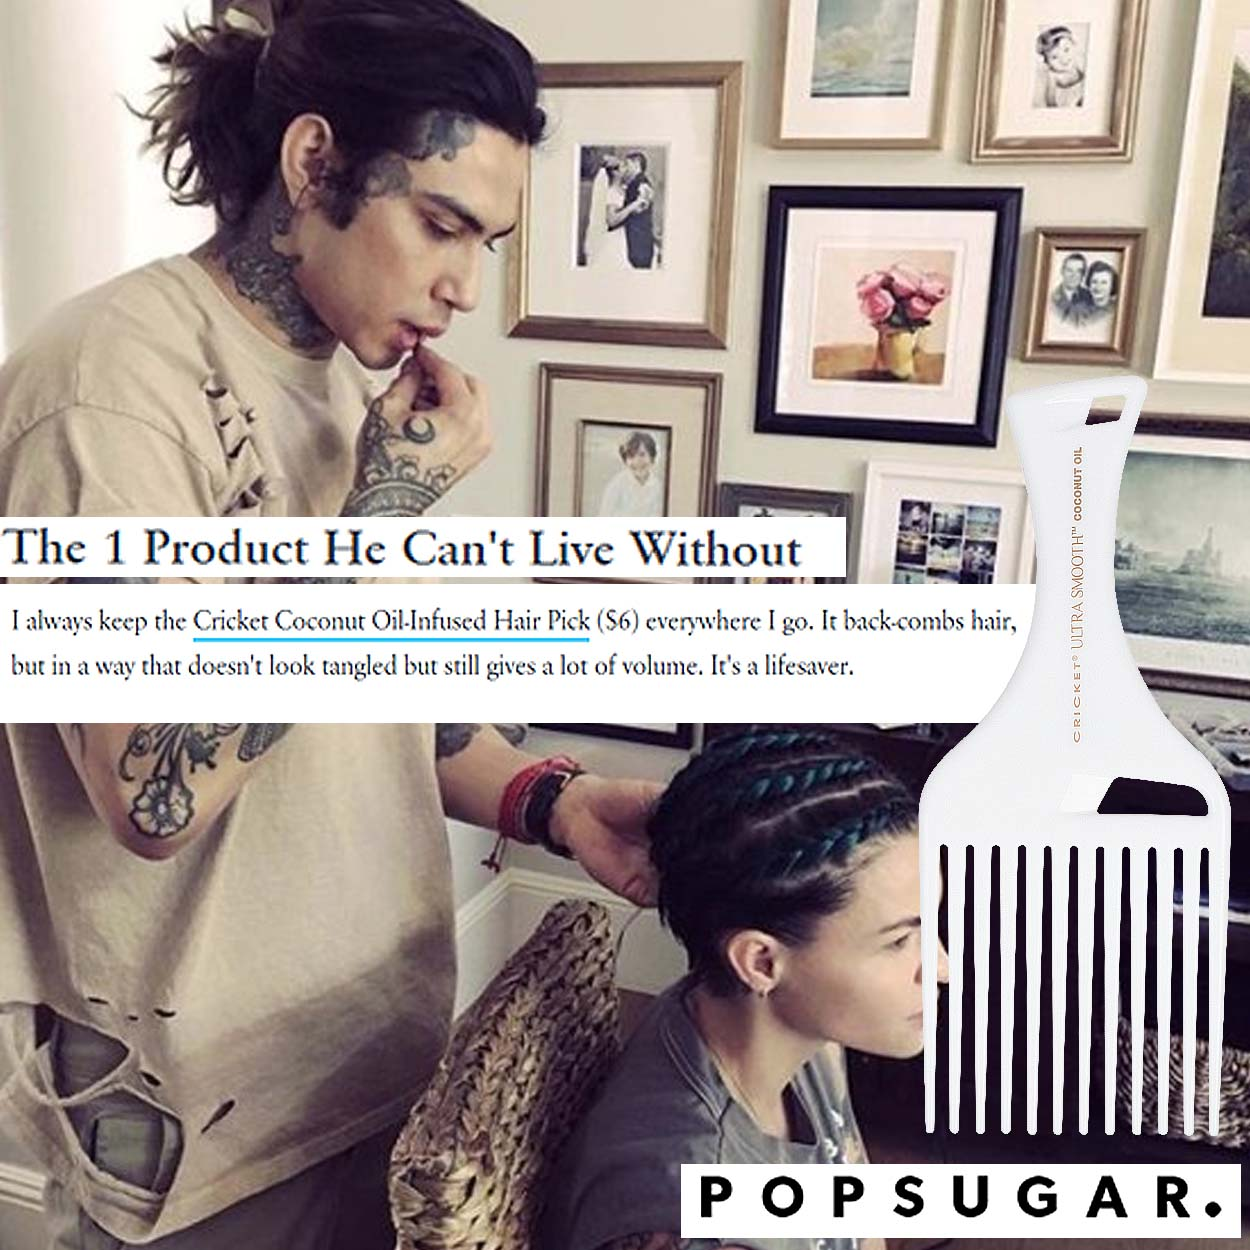 2018.7.2-popsugar.celebrity-hairstylist.ultrasmooth-cc-combs-pg2.jpg